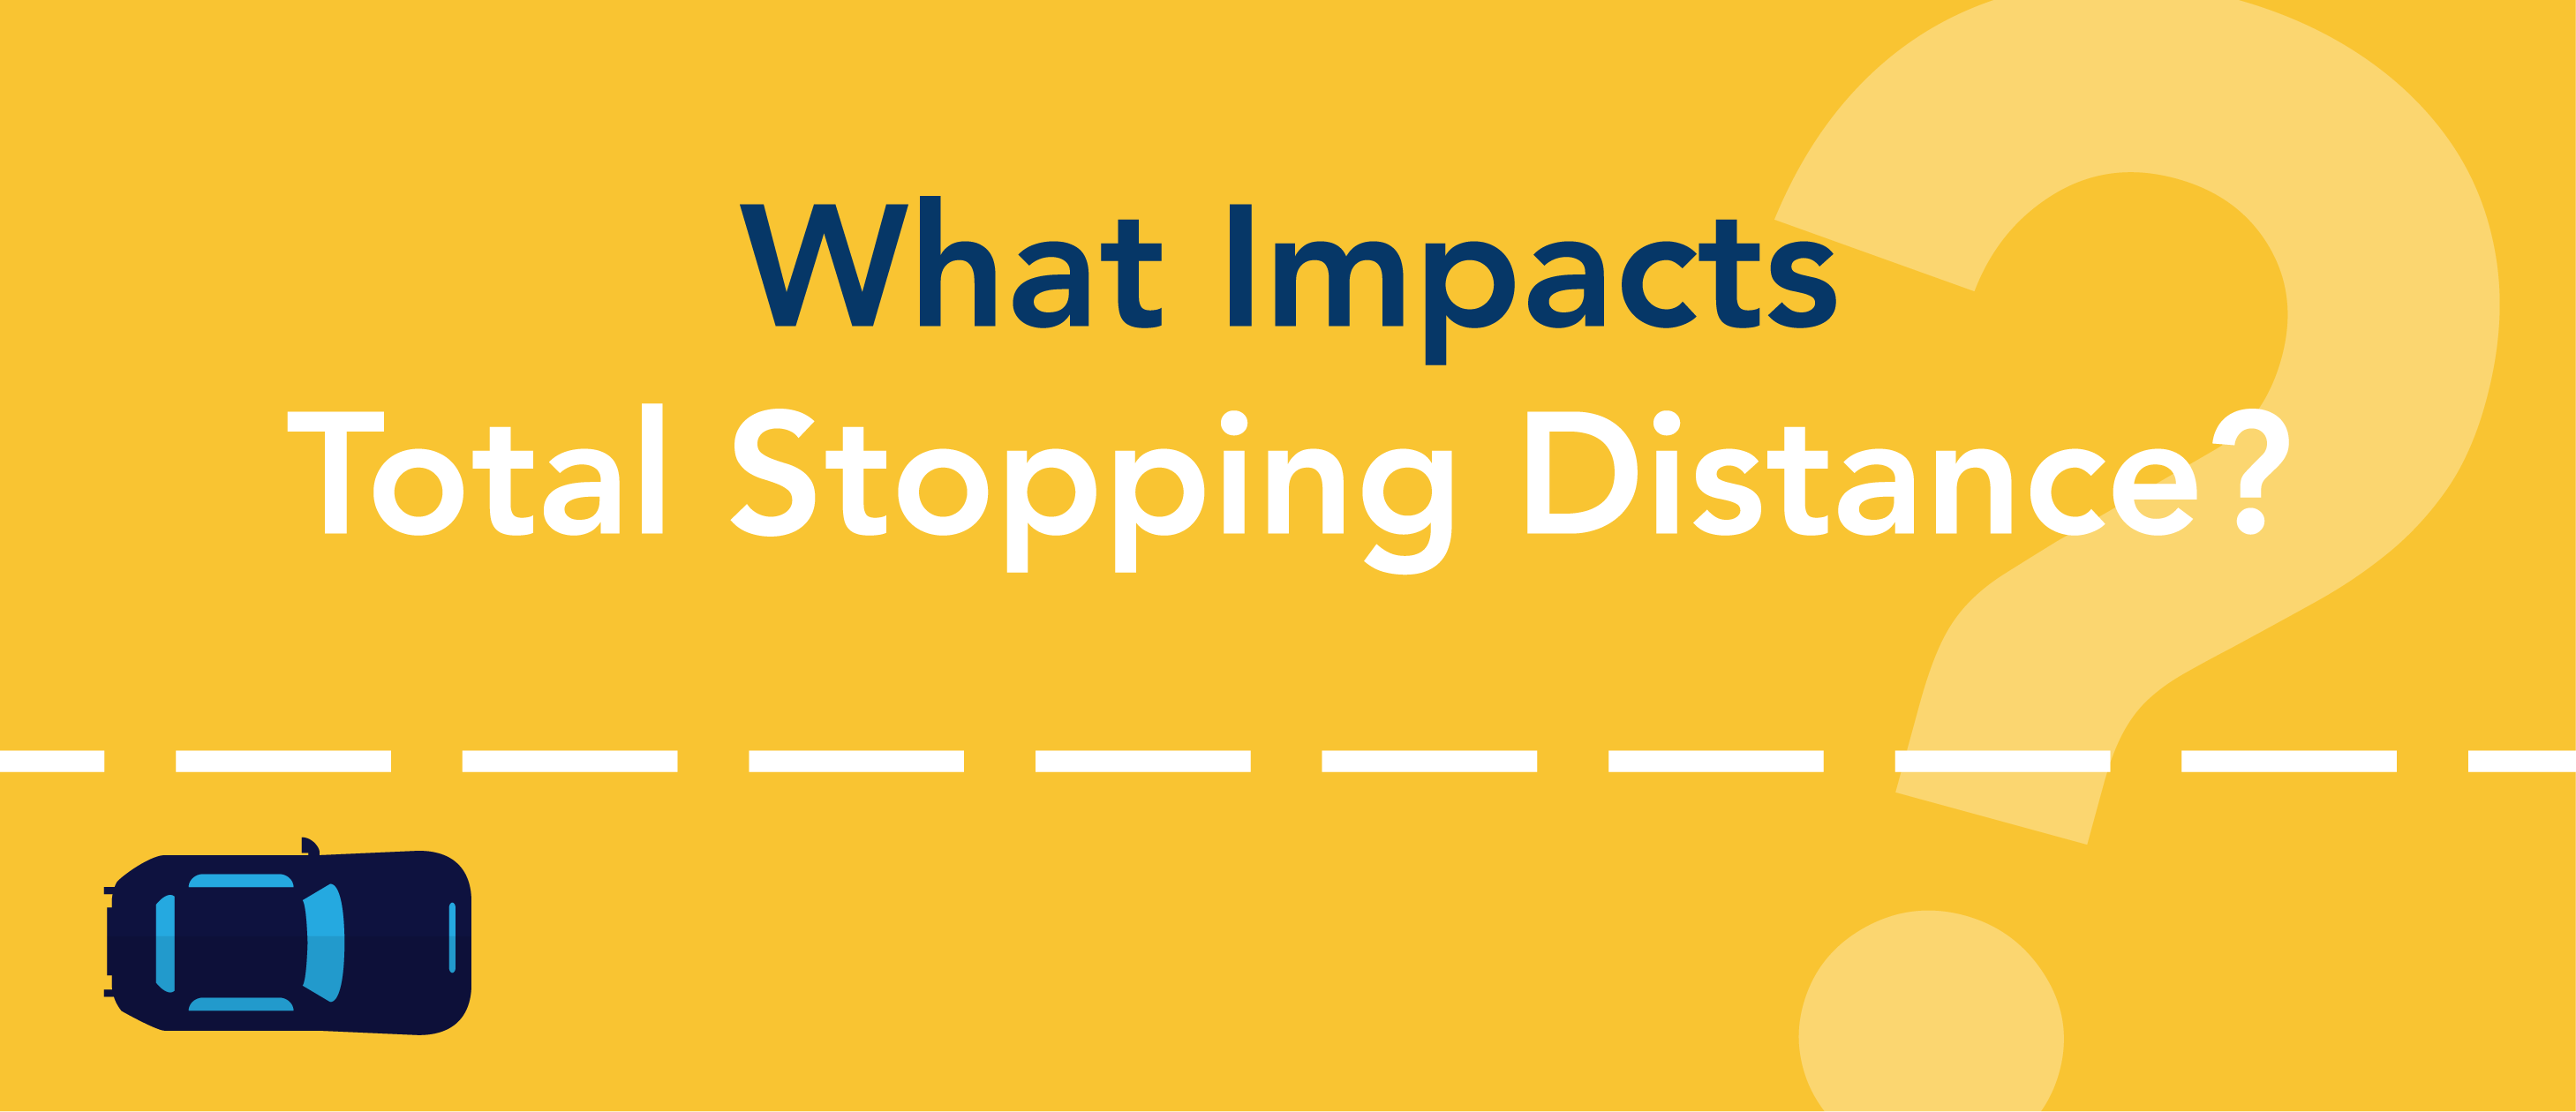 What impacts total stopping distance?